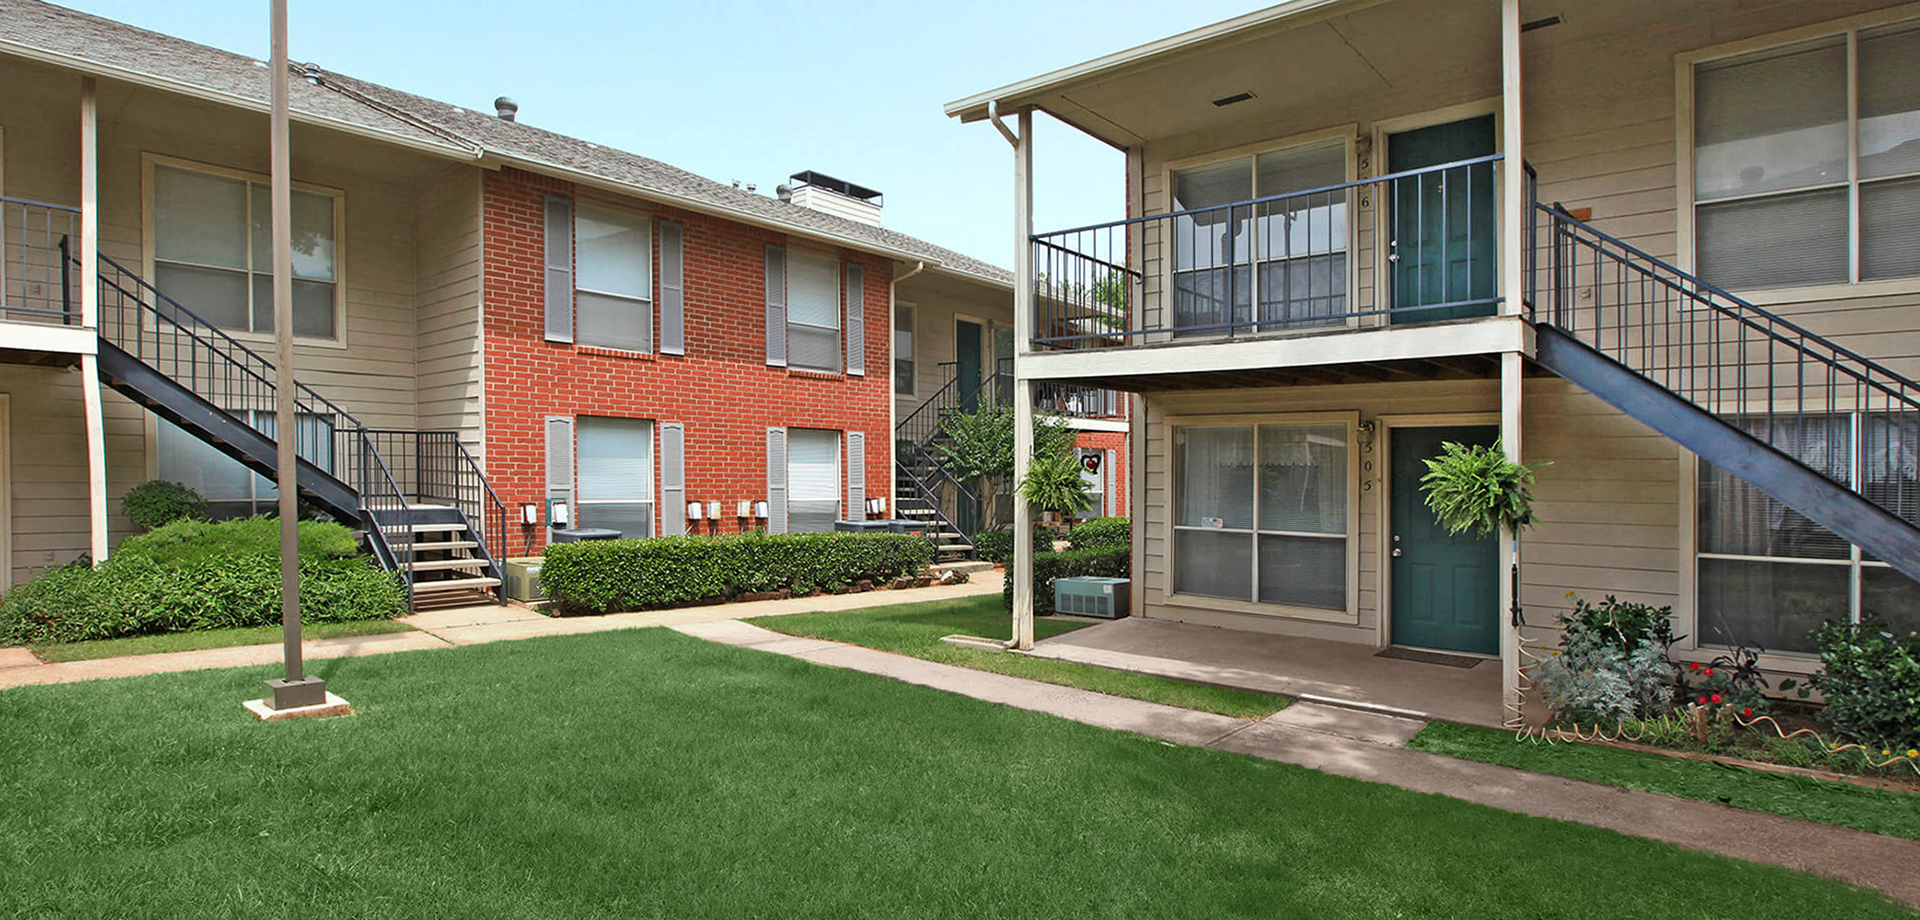 Meadow Glen - Apartments in Midwest City, OK